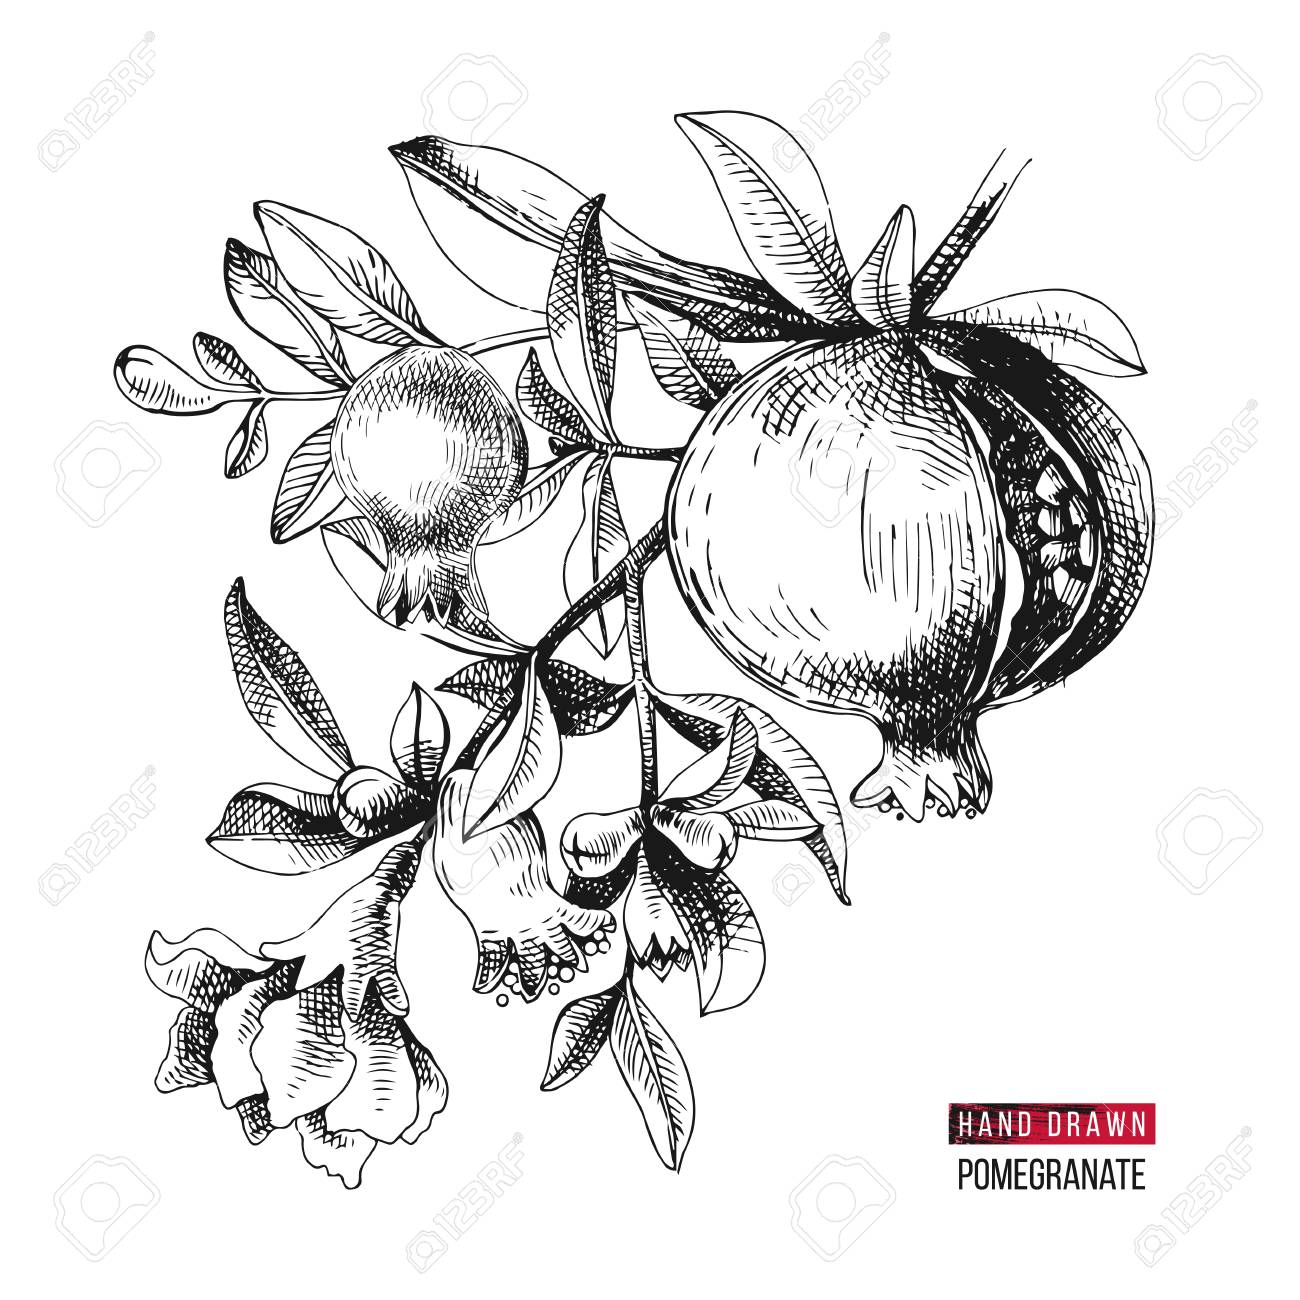 Hand drawn pomegranate branch with flowers and fruits. Vector illustration - 126871366